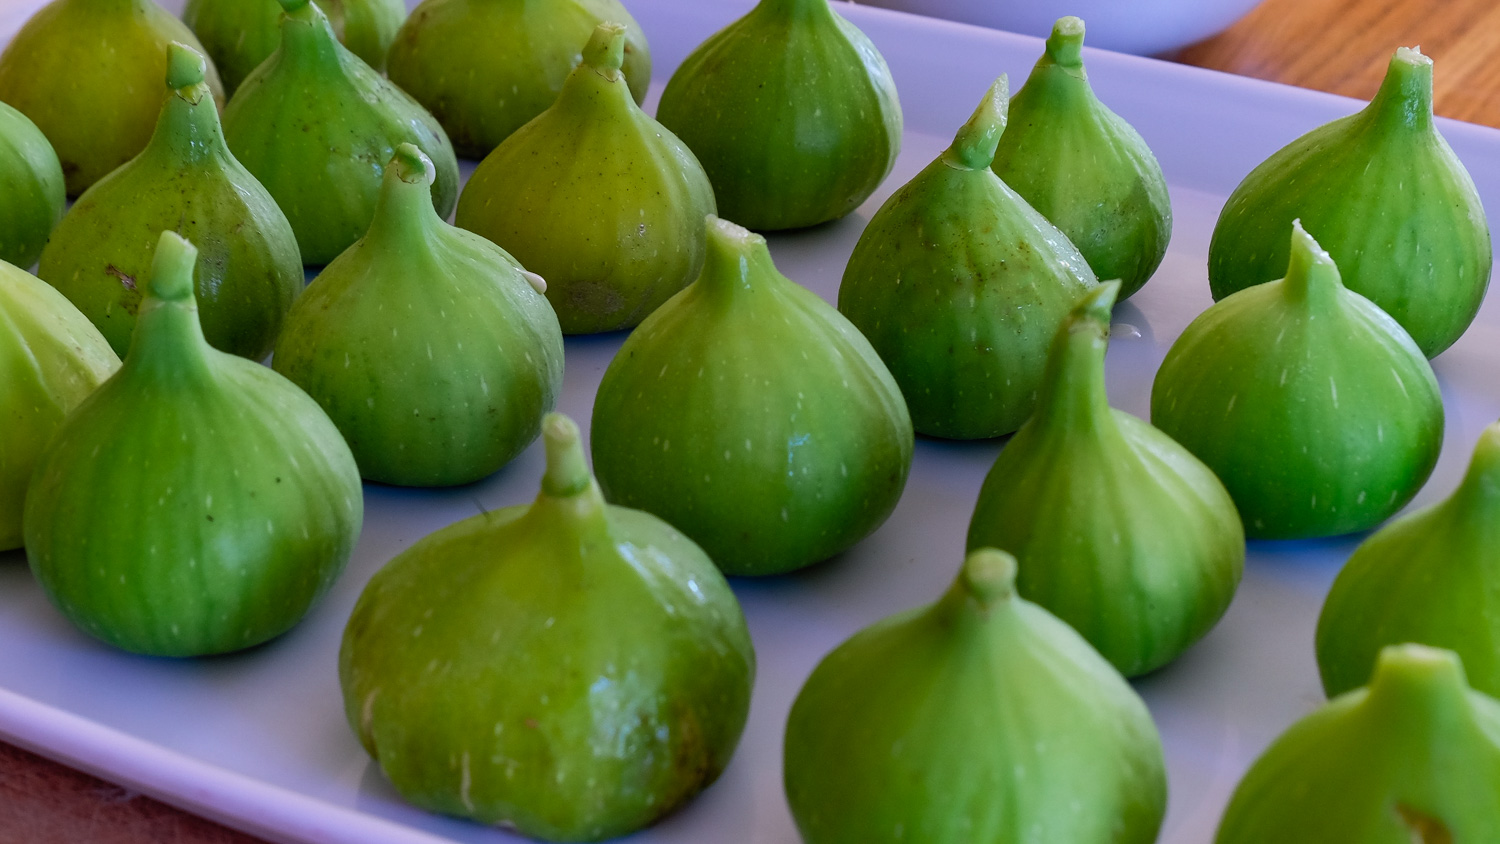 Fresh and ripe green figs from Corsica